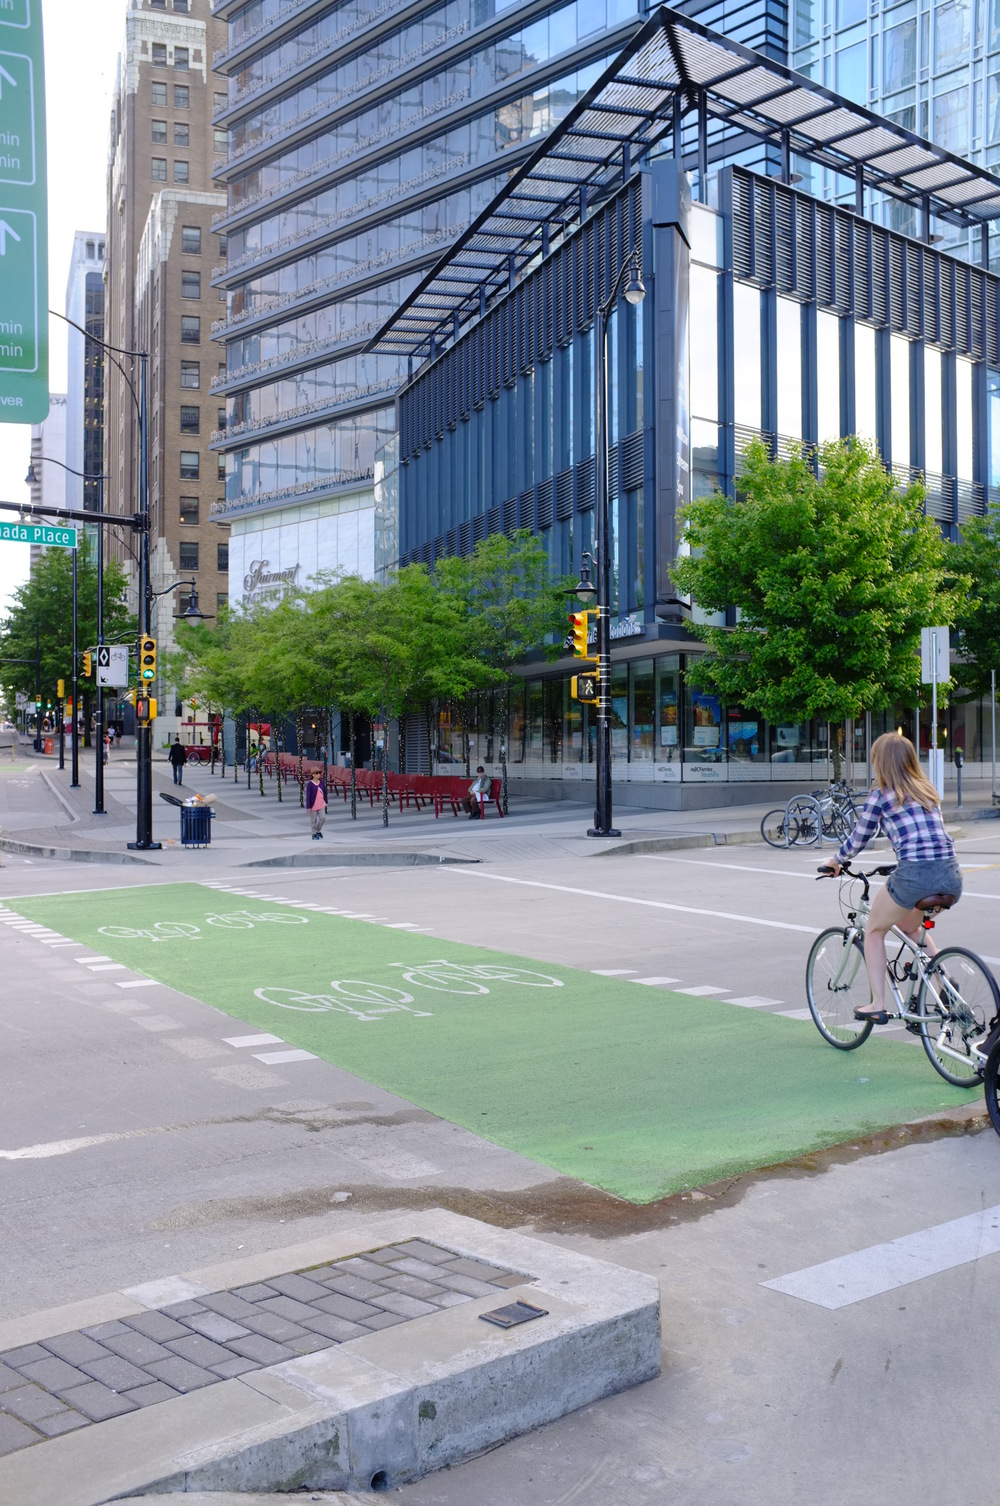 Burrard Street cycle track makes for comfortable city riding